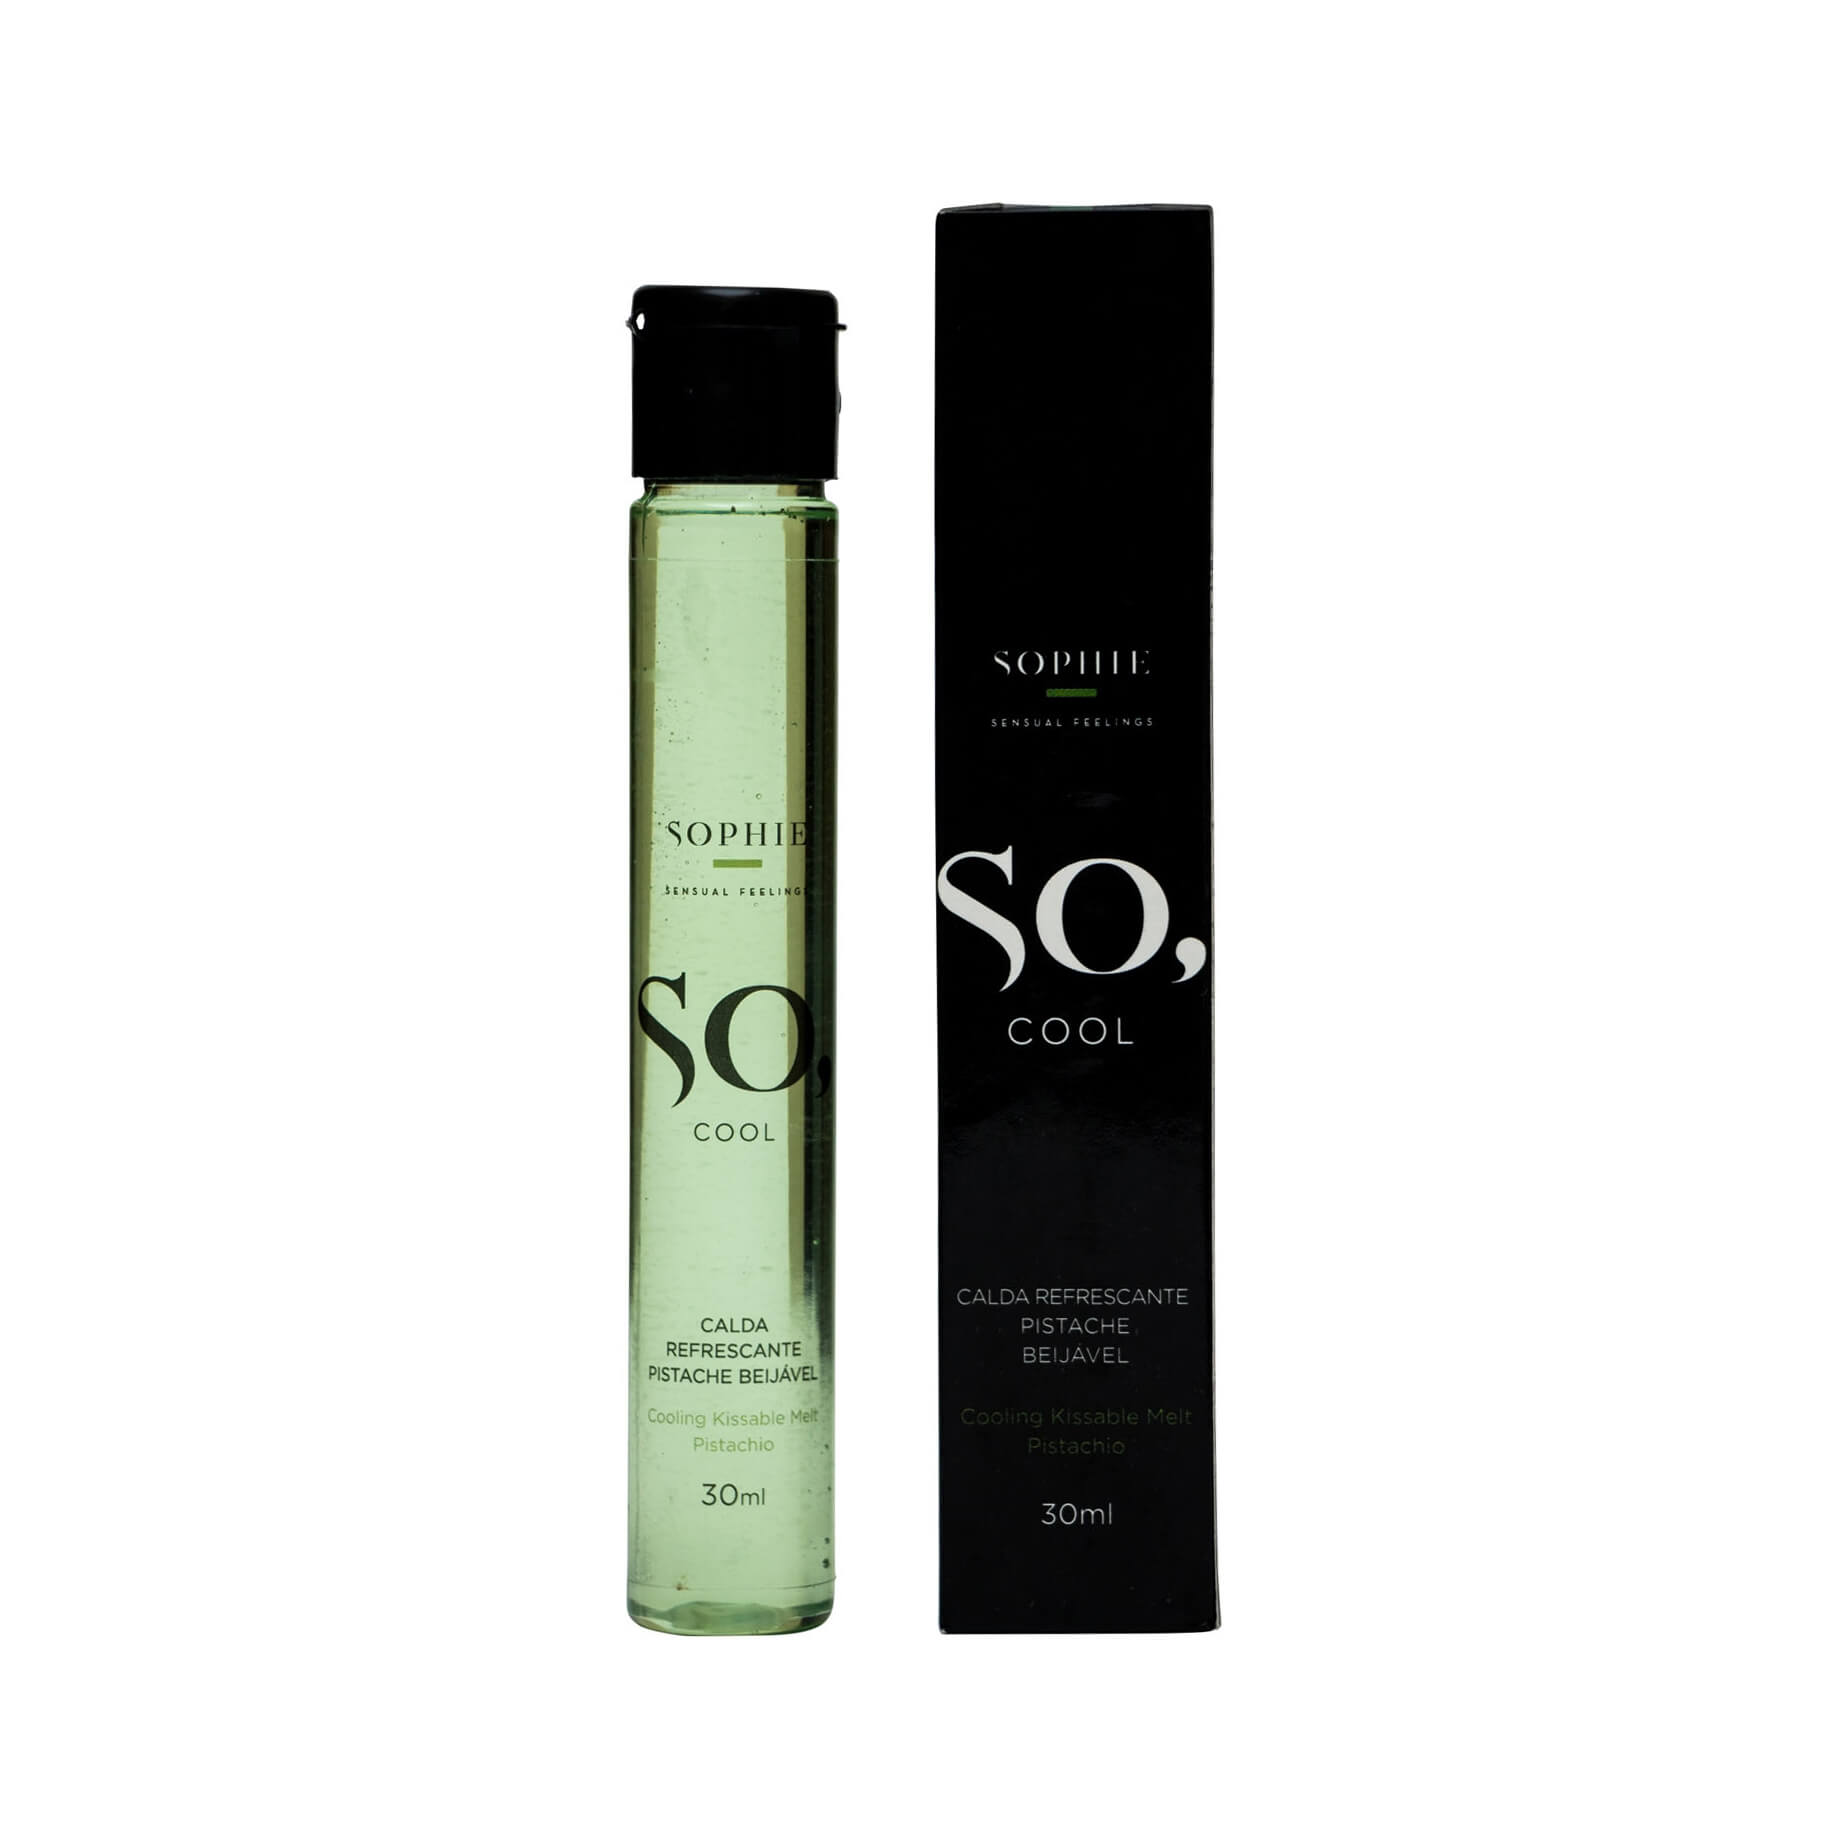 Sophie So, Cool - Calda Refrescante Beijável - 30 ML| Sabor: Pistache